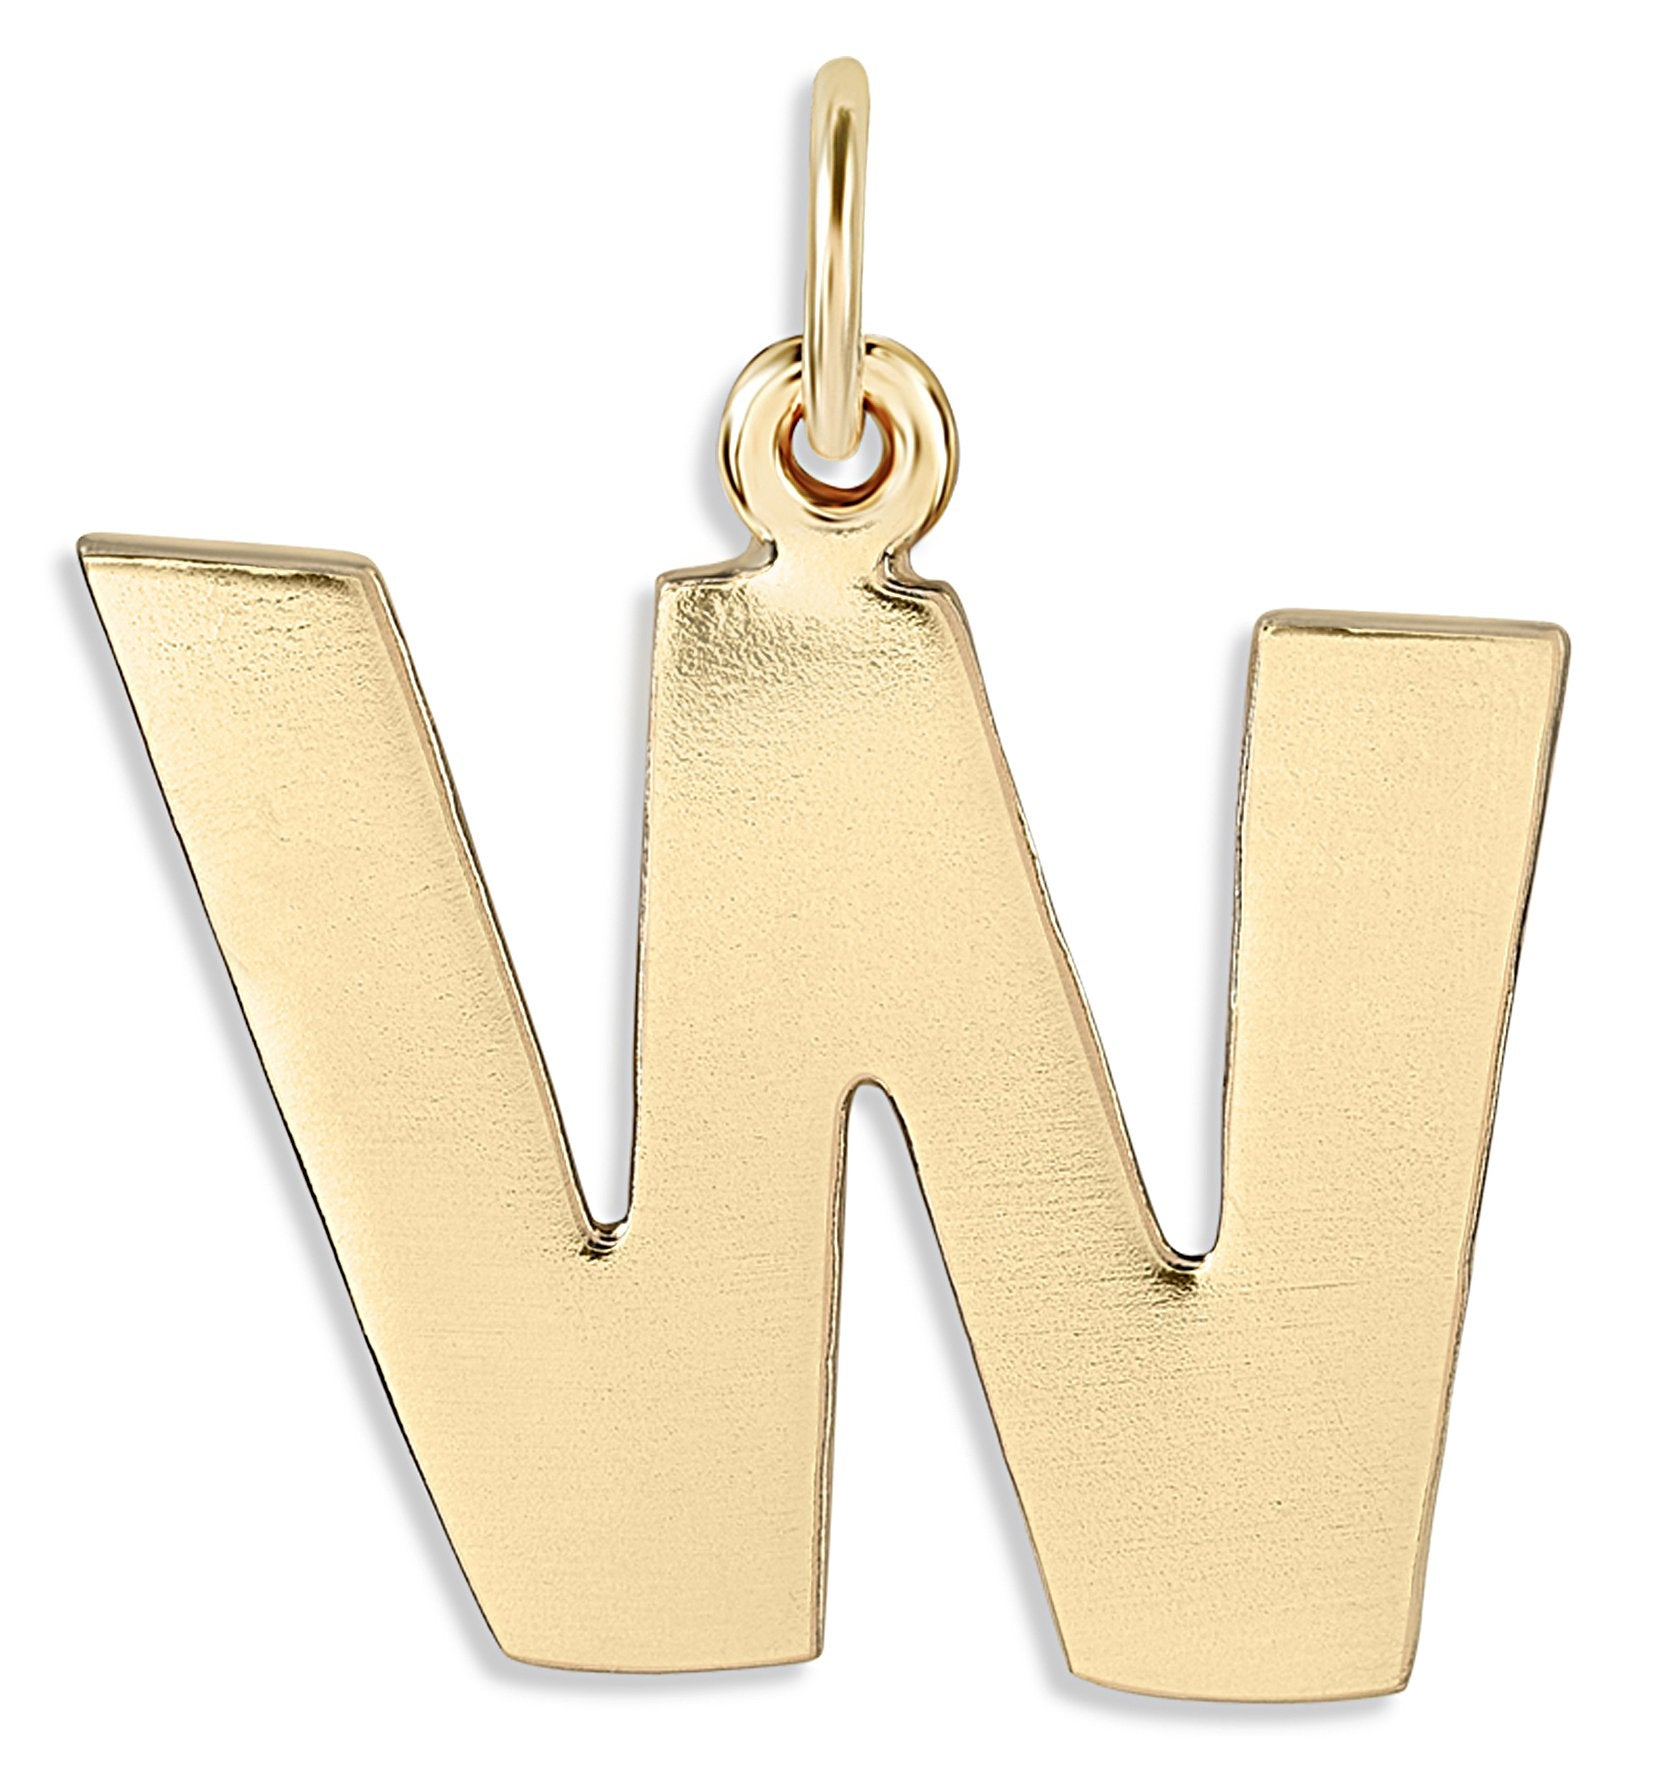 """W"" Cutout Letter Charm 14k Yellow Gold Jewelry For Necklaces And Bracelets From Helen Ficalora Every Letter And Initial Available"